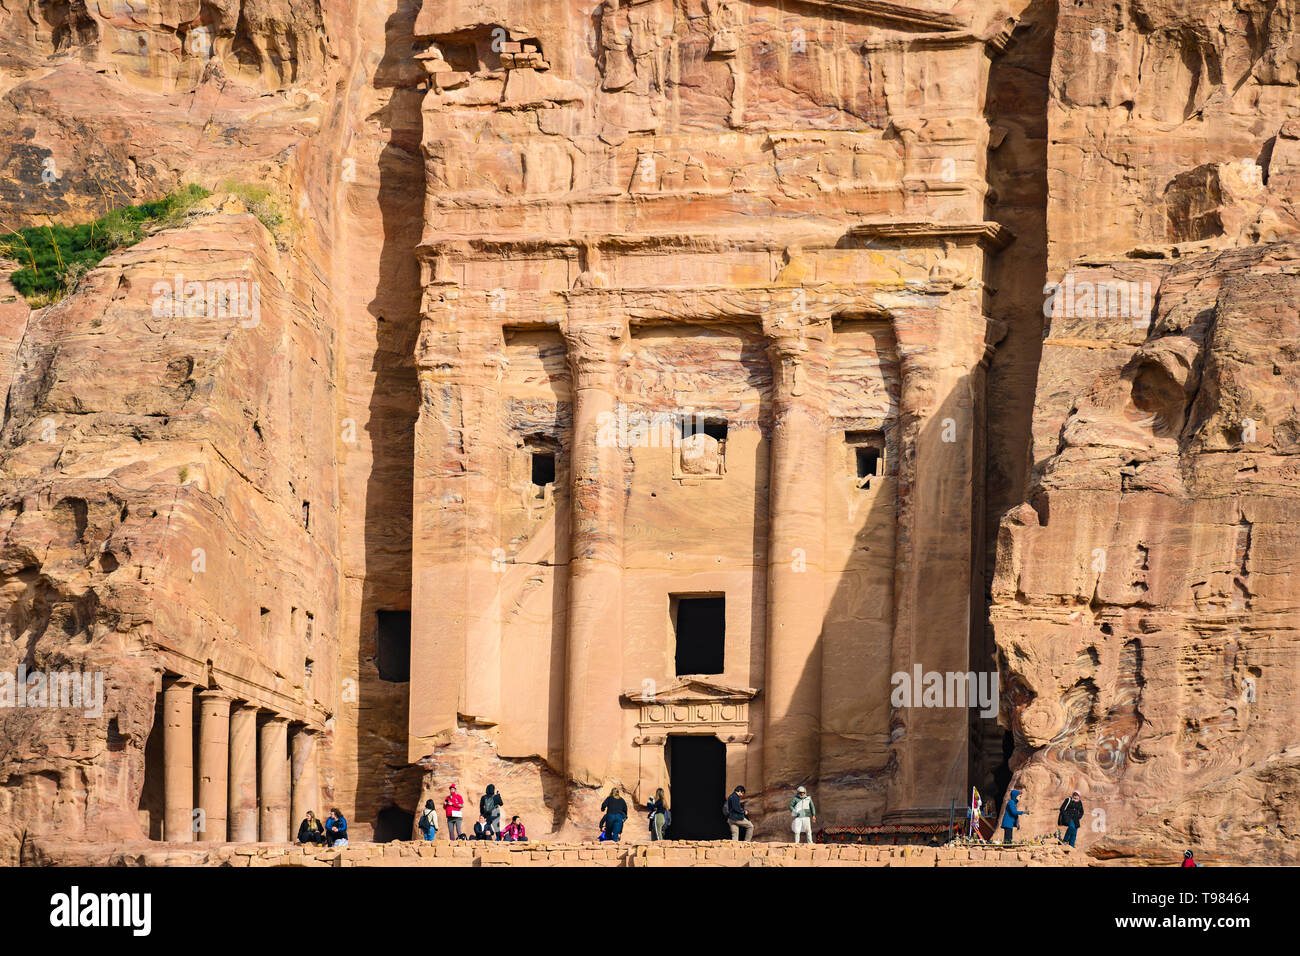 Some tourists are admiring and taking pictures of a huge temple carved into the rock. Stock Photo